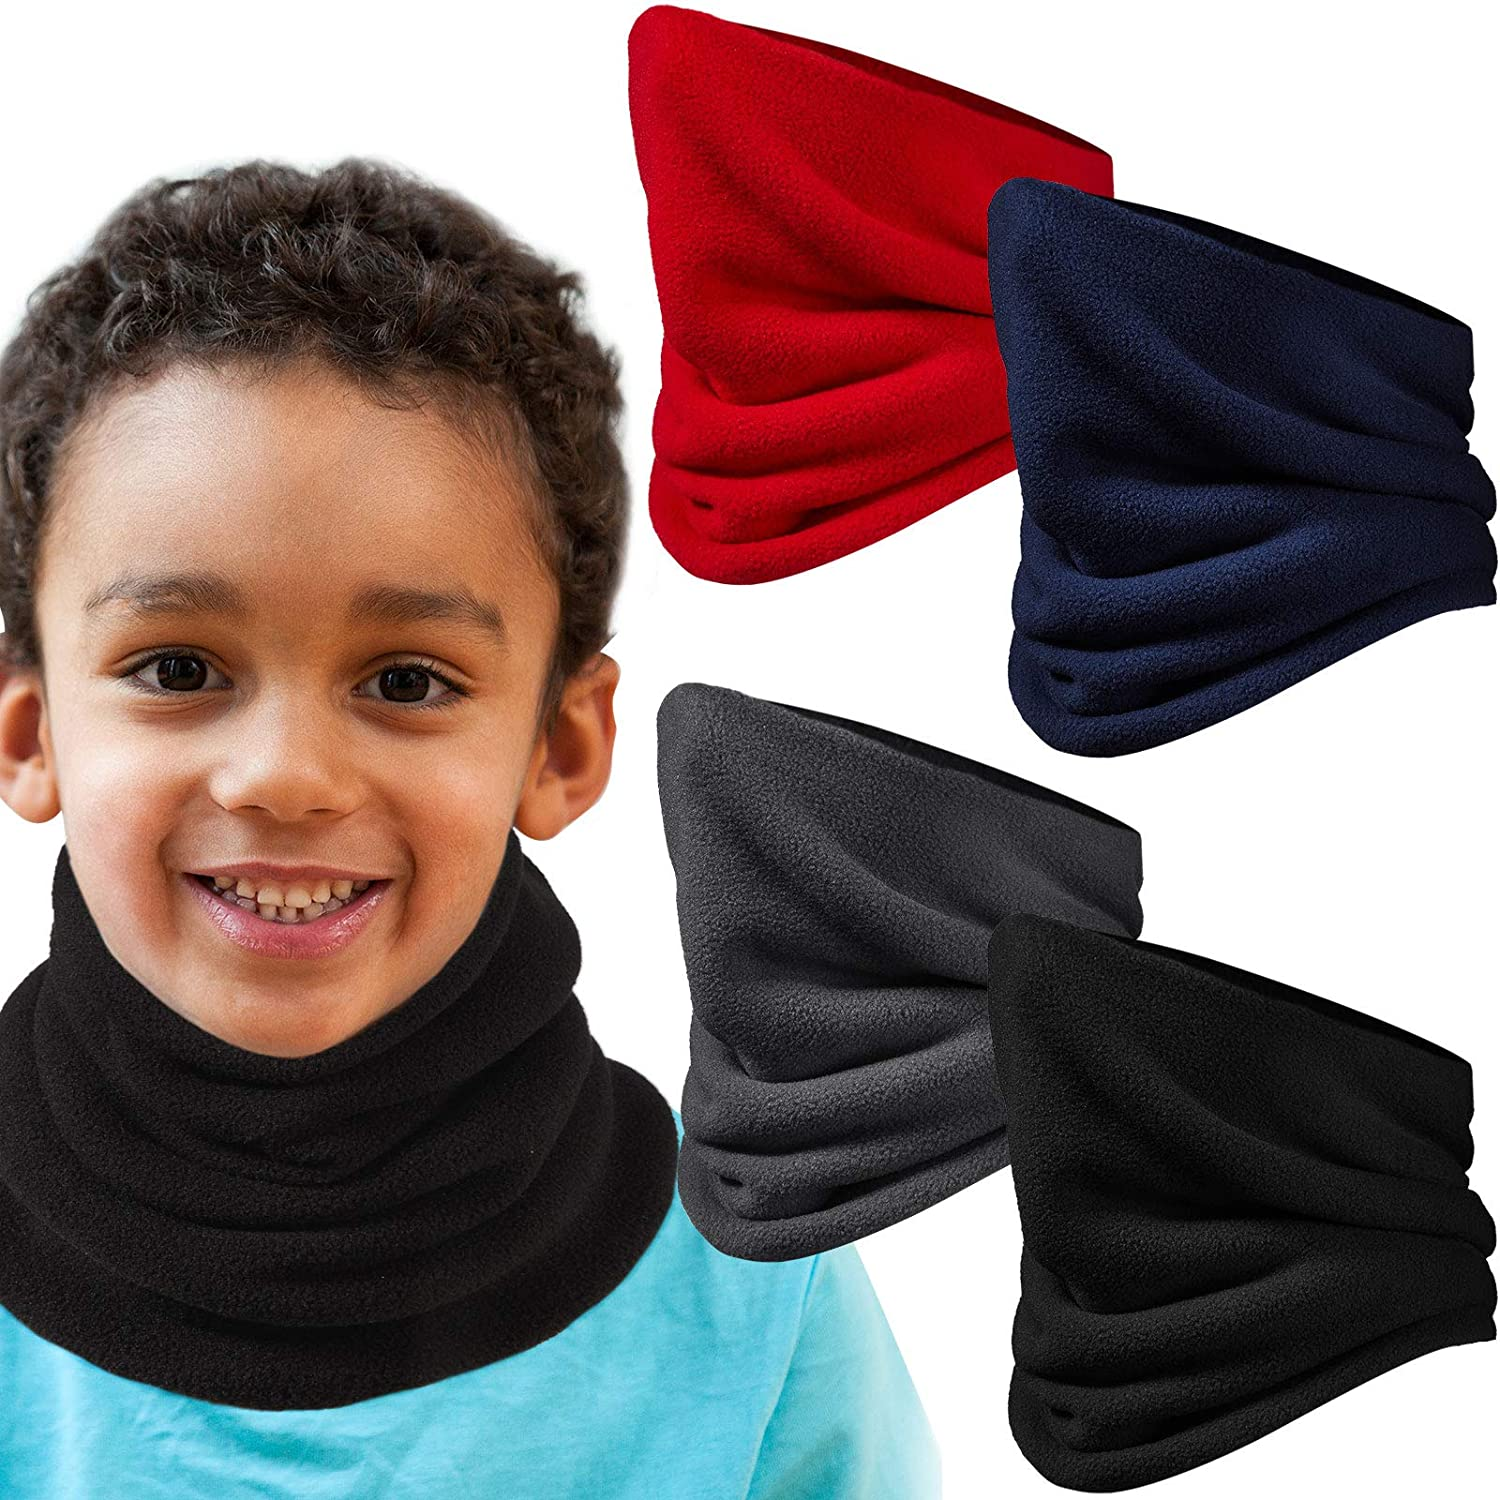 4 Pieces Kids Fleece Neck Warmer Double-Layer Winter Neck Gaiter Windproof Face Covering Scarf for Boys Girls